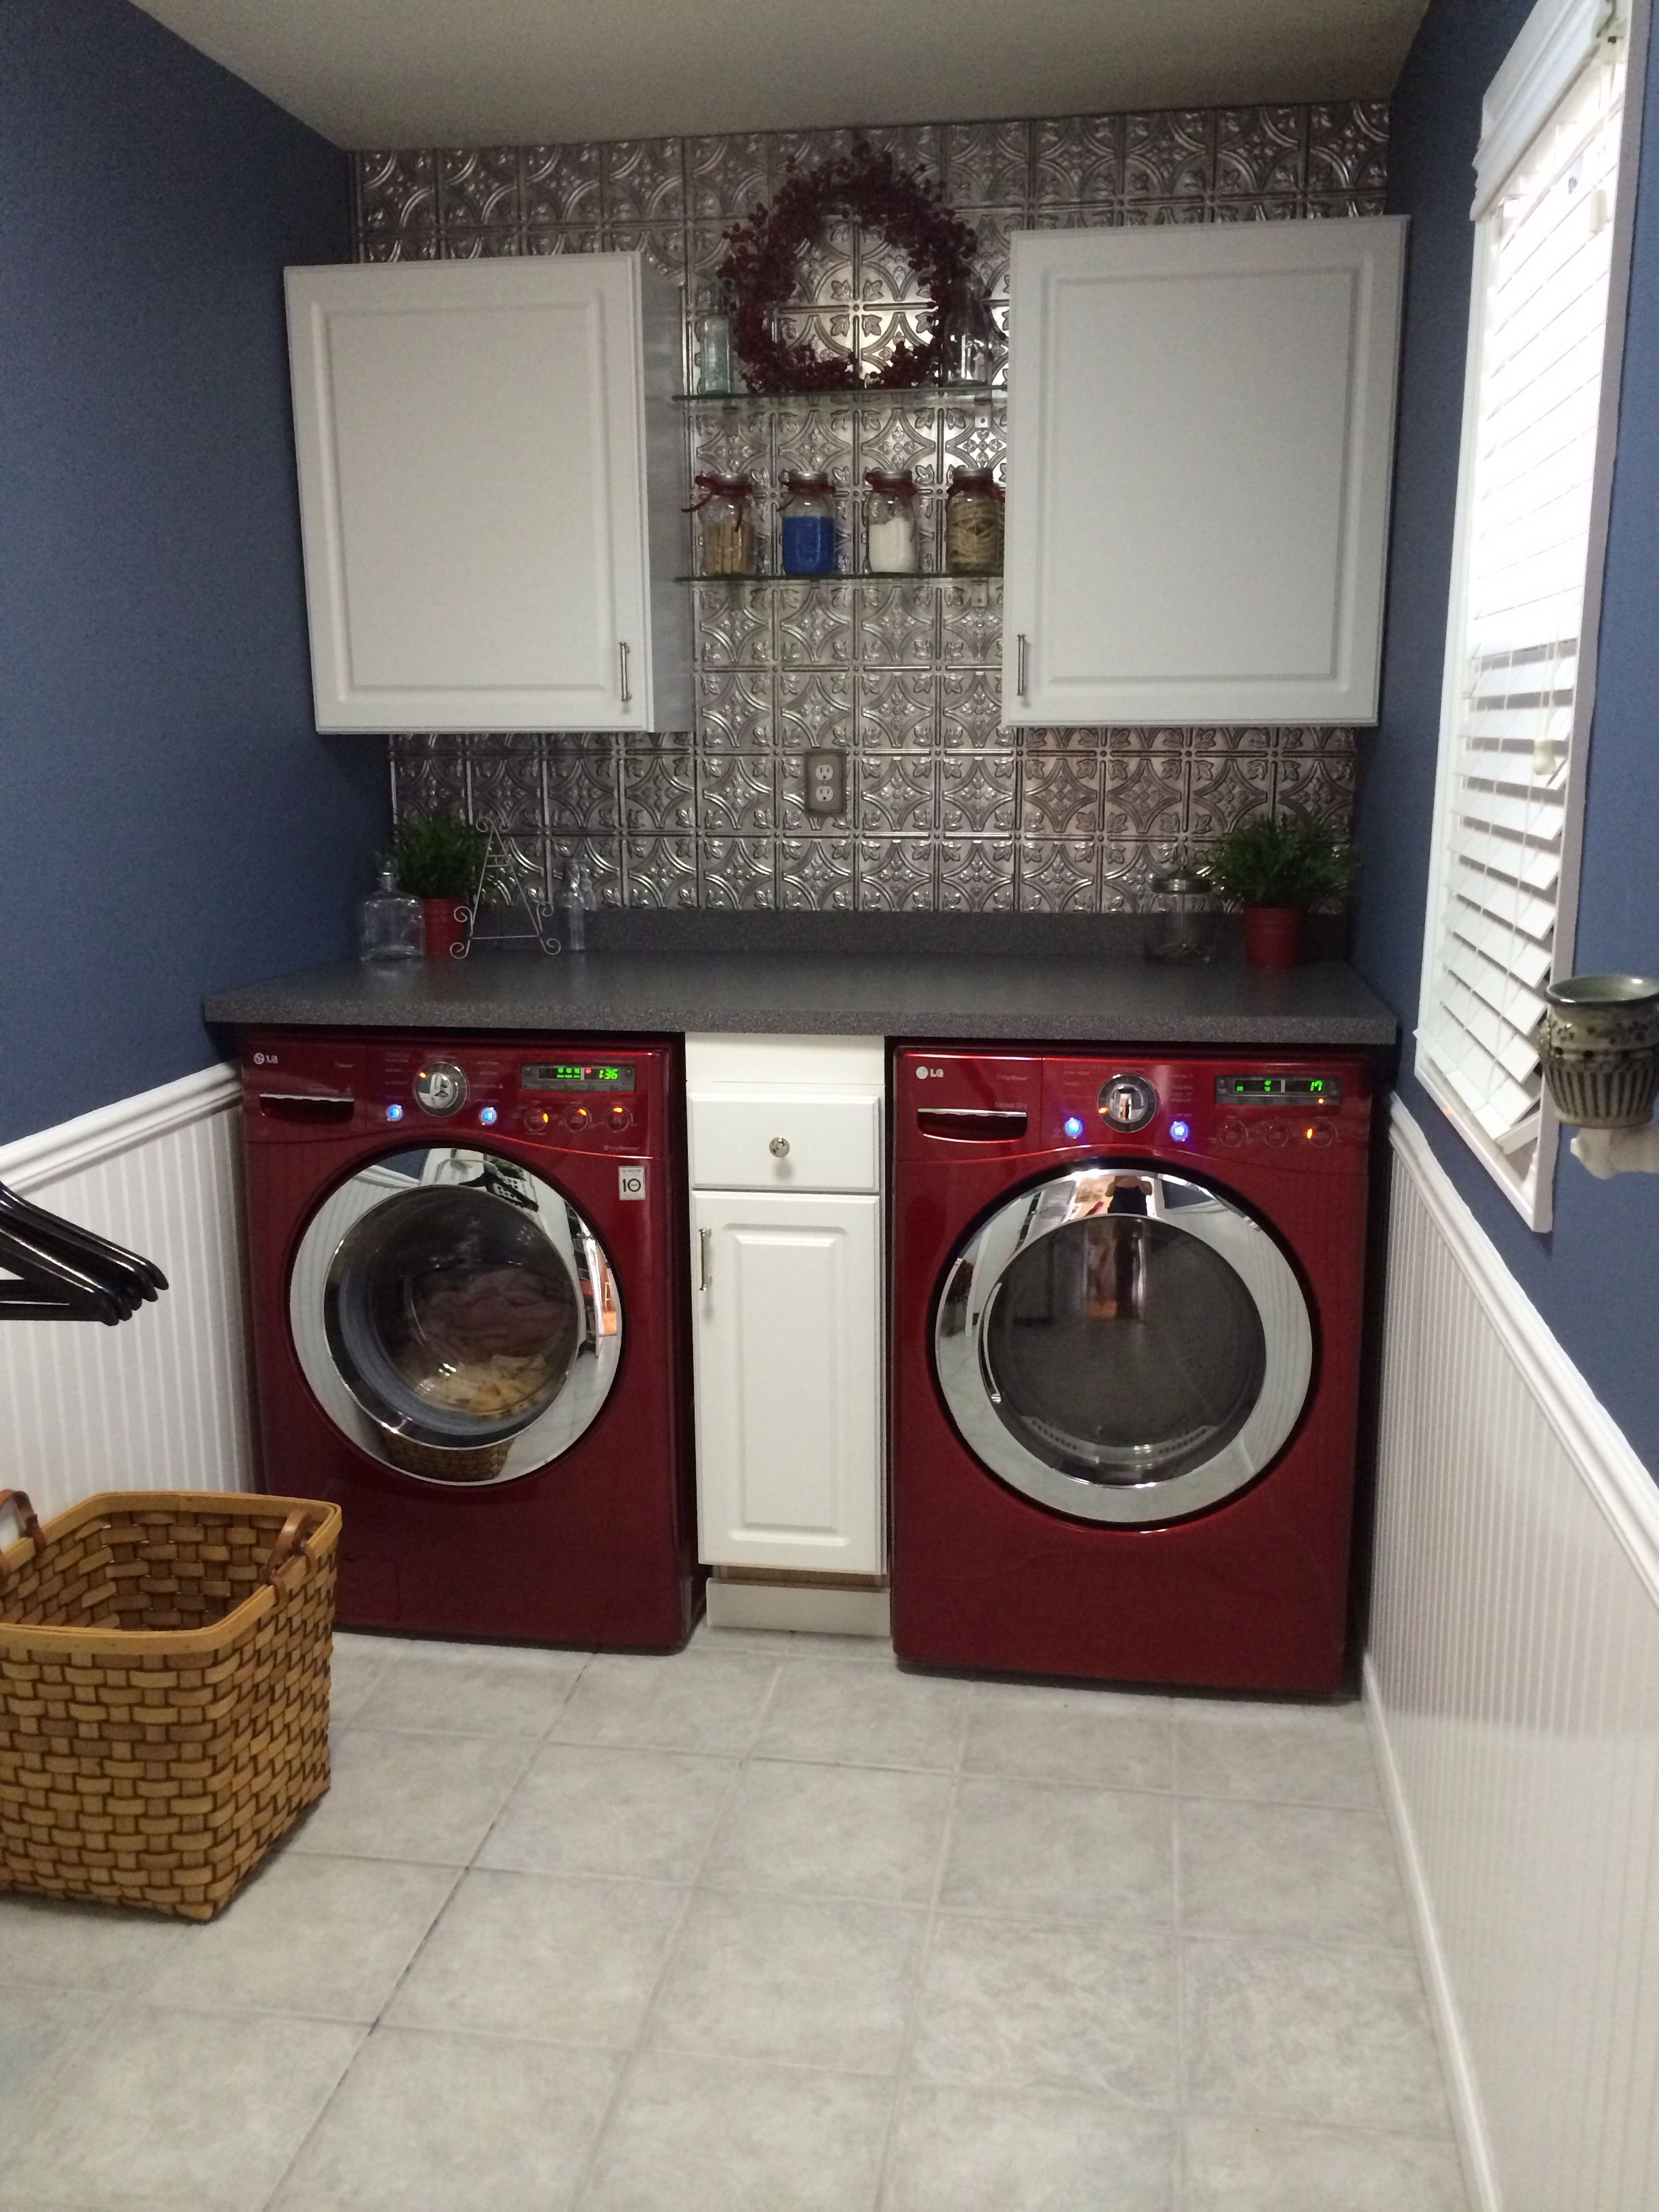 Laundry Room With Red Washer And Dryer